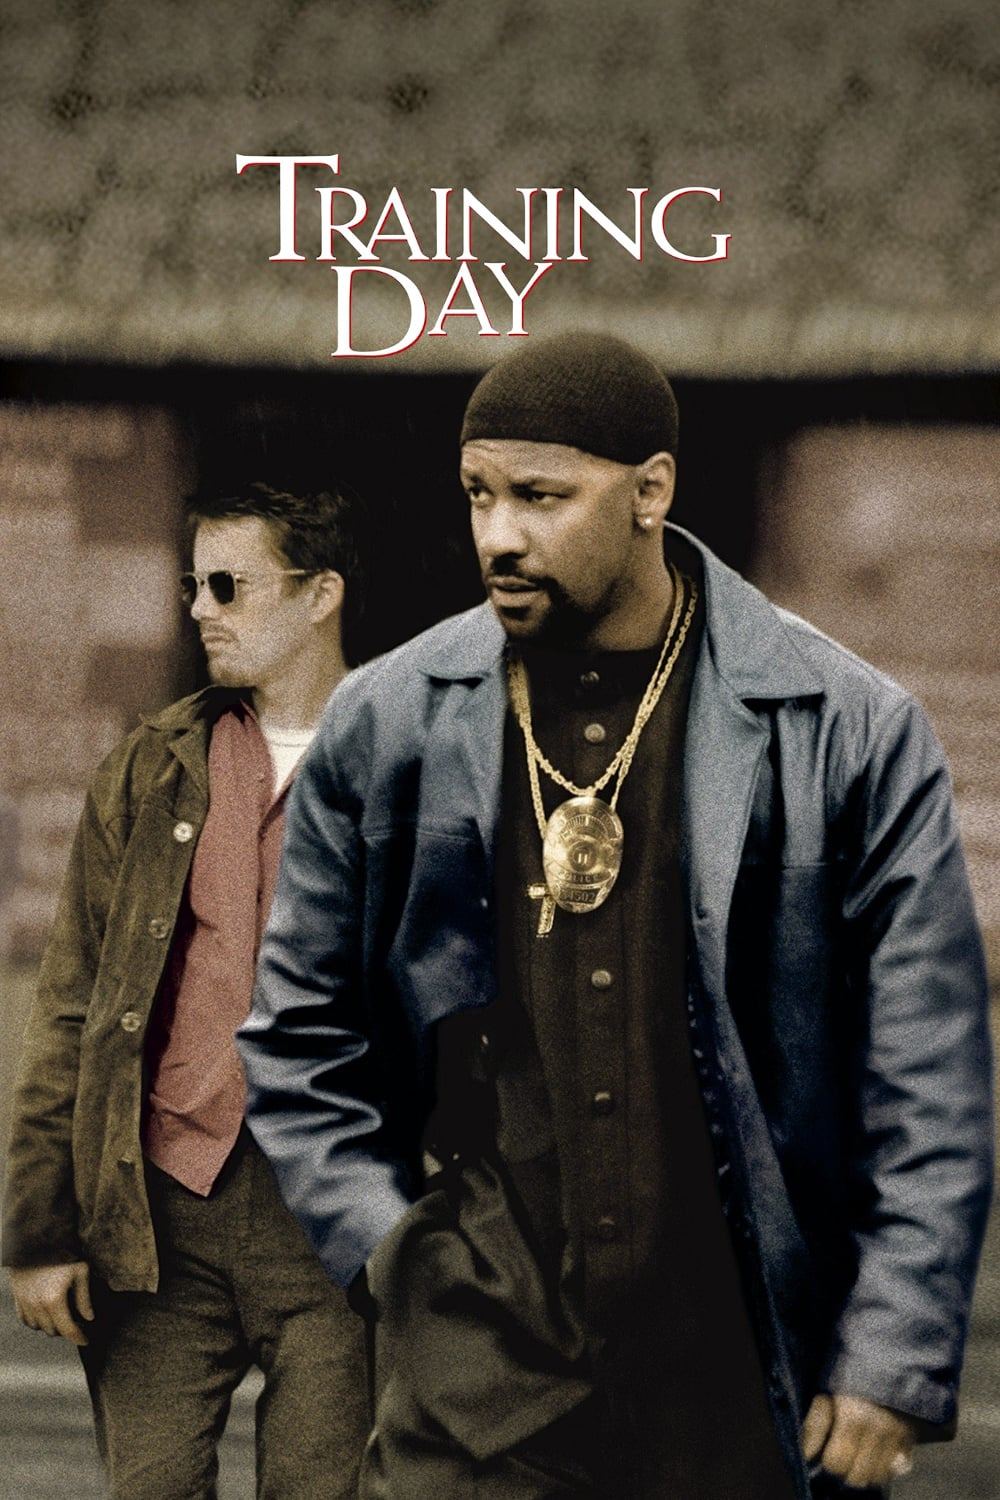 Training Day Movie Streaming Online Watch on Hungama